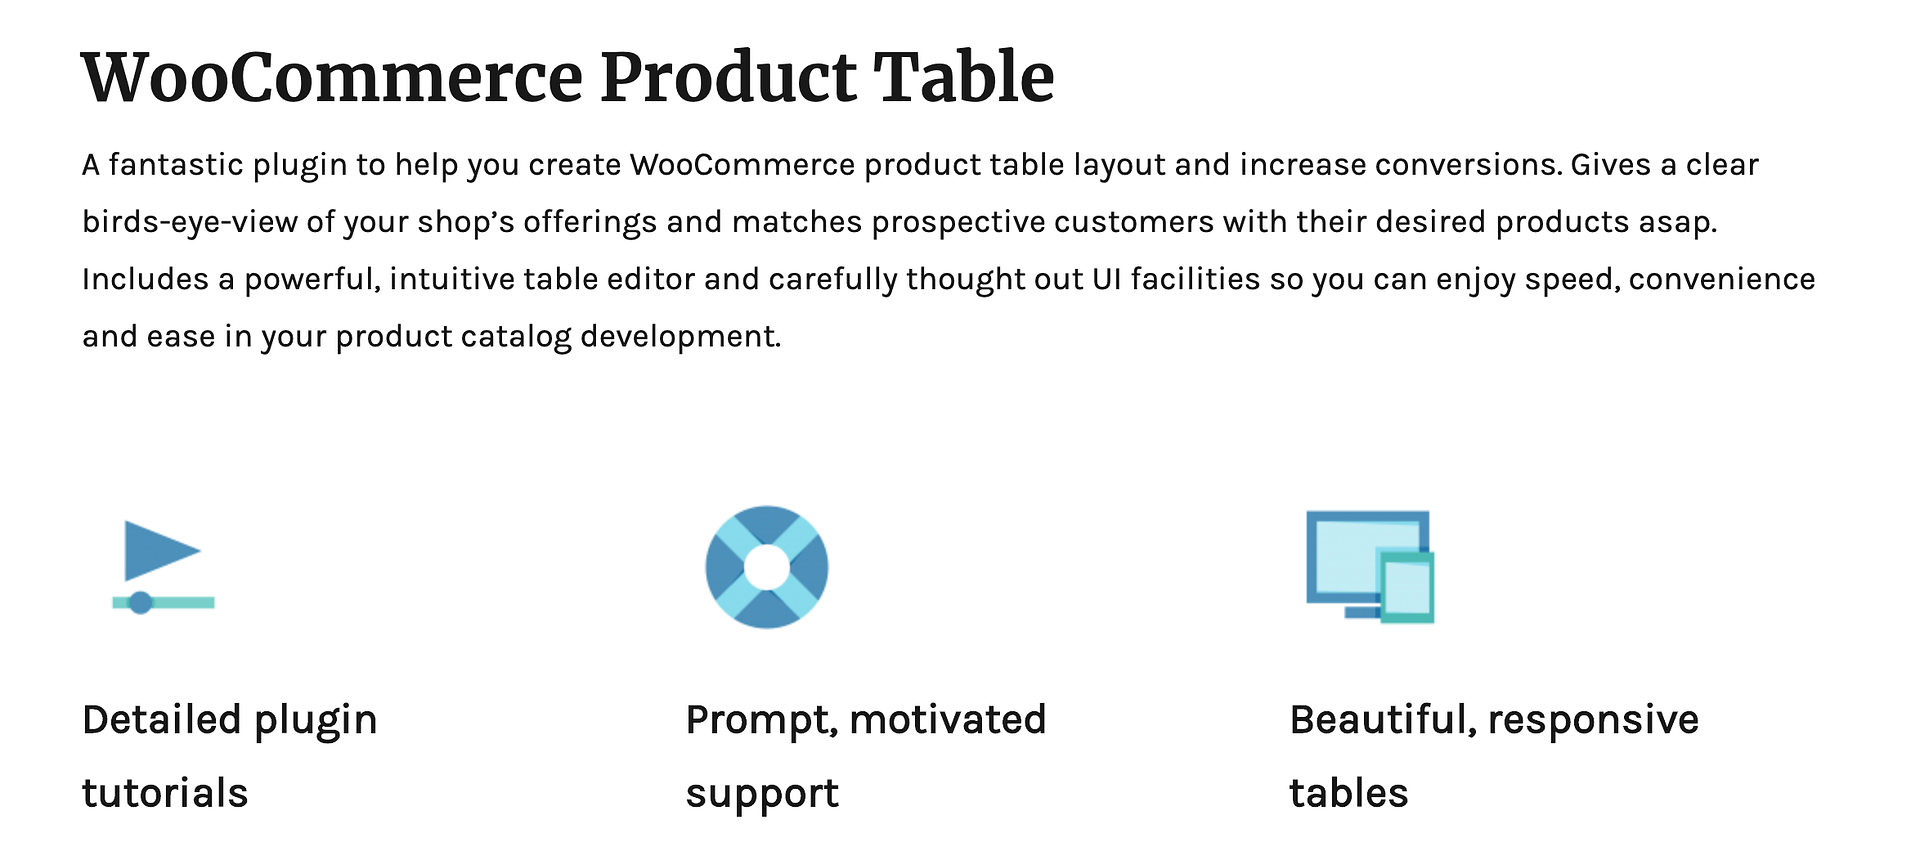 3 WooCommerce Product Table Plugins Compared: Which is Best